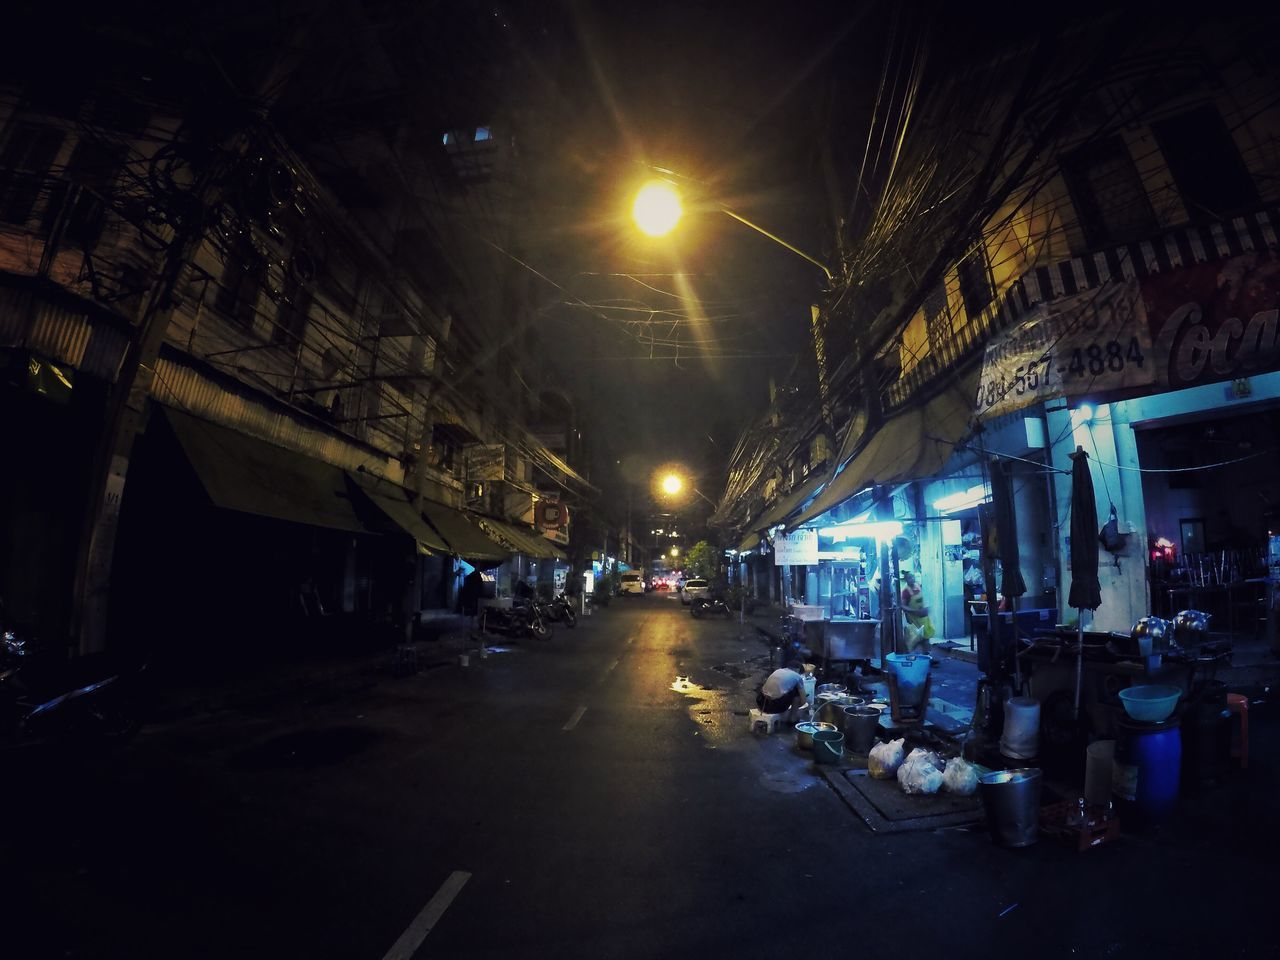 Night Street Transportation Built Structure City Mode Of Transport Car Illuminated Architecture Land Vehicle Building Exterior Road Outdoors Sky No People Bangkok Streetstyle GoPrography